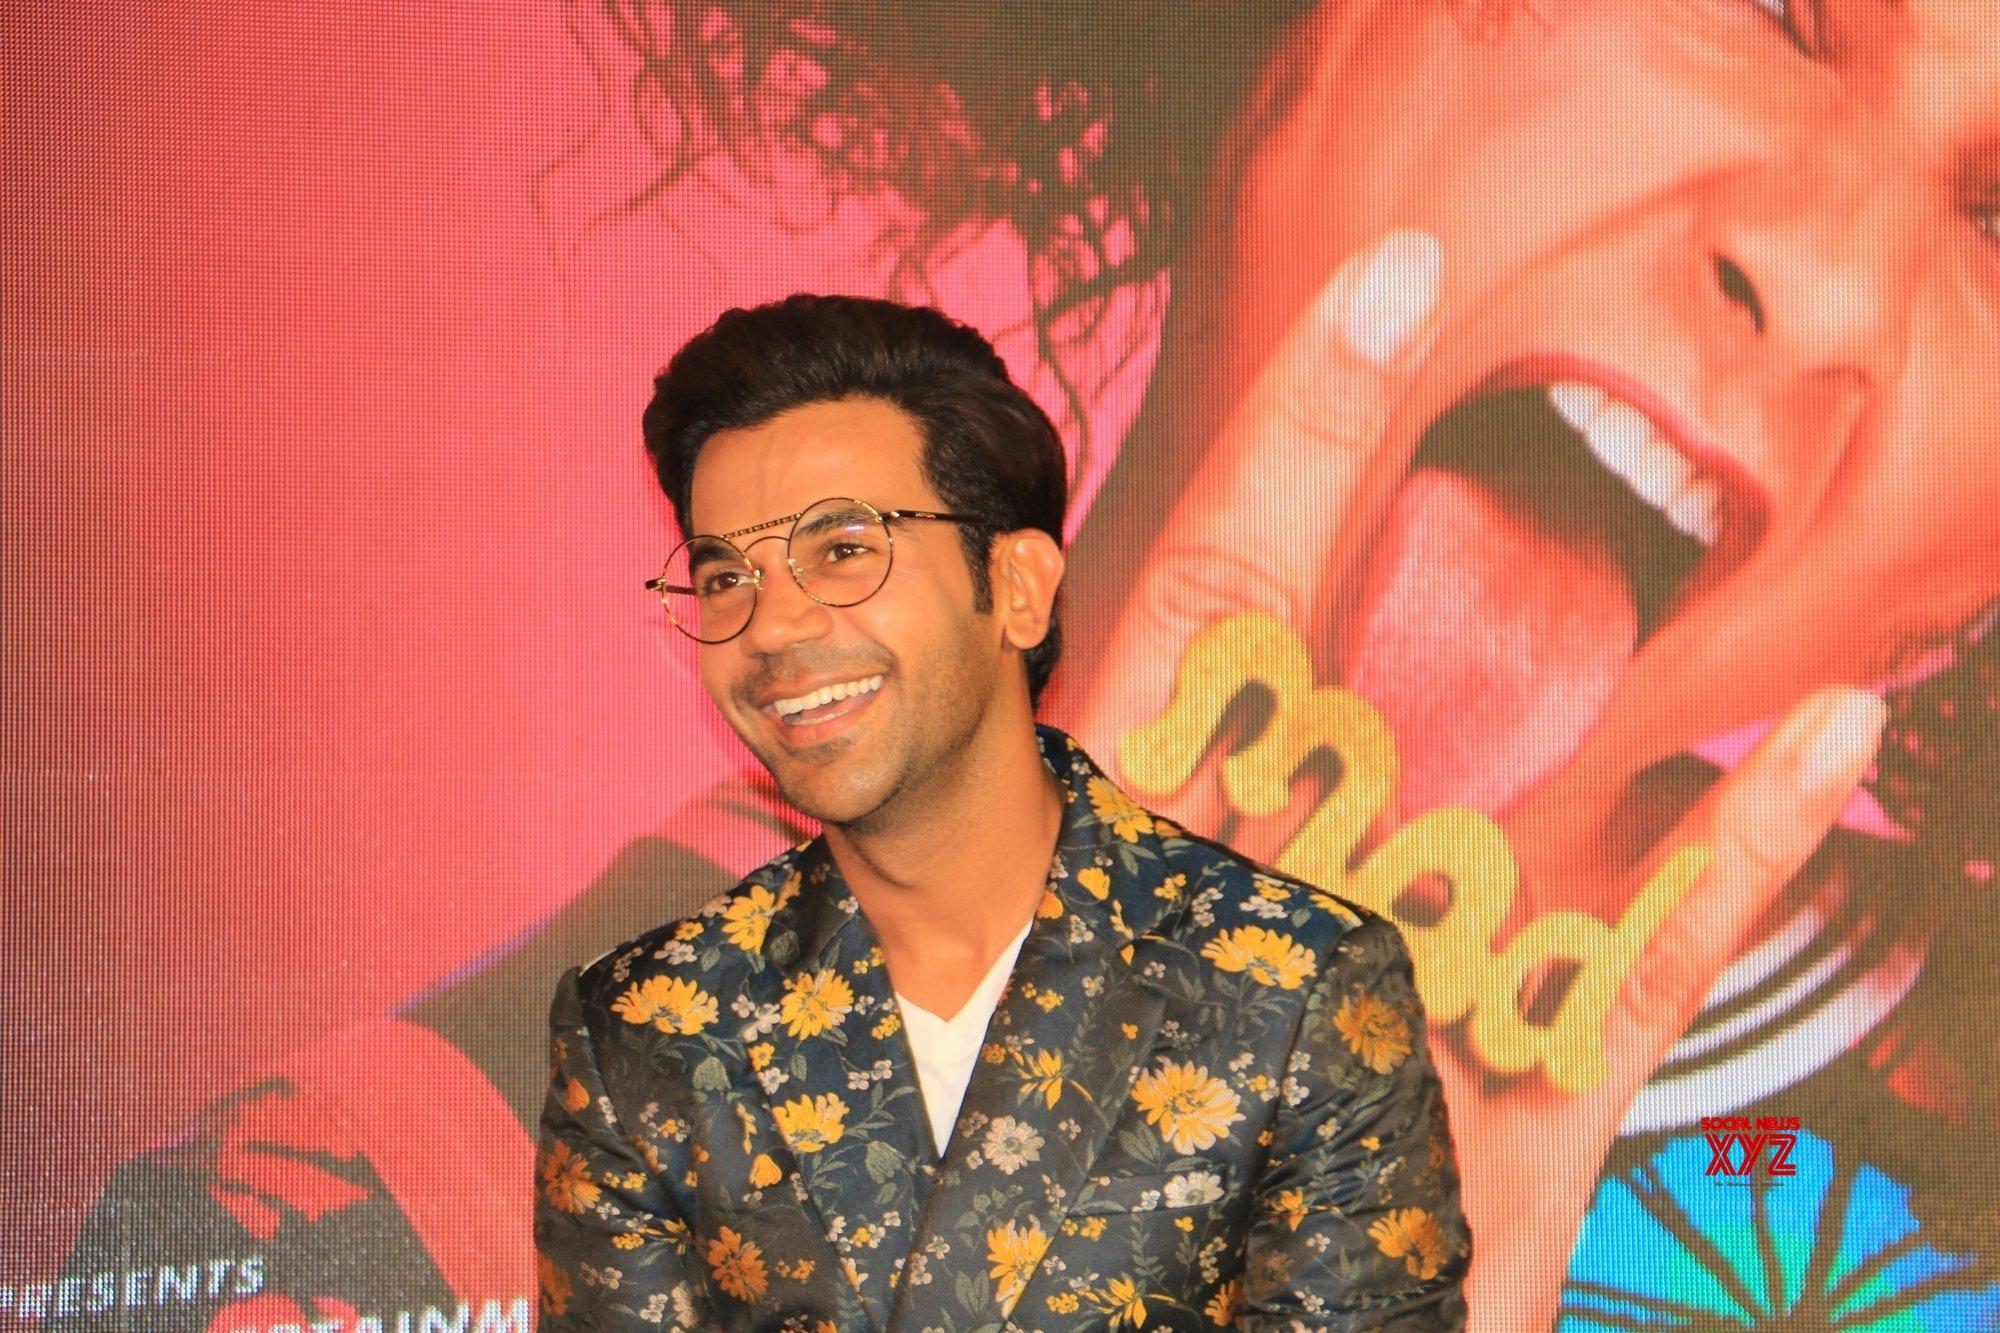 Rajkummar Rao took cue from real life for 'Made In China'